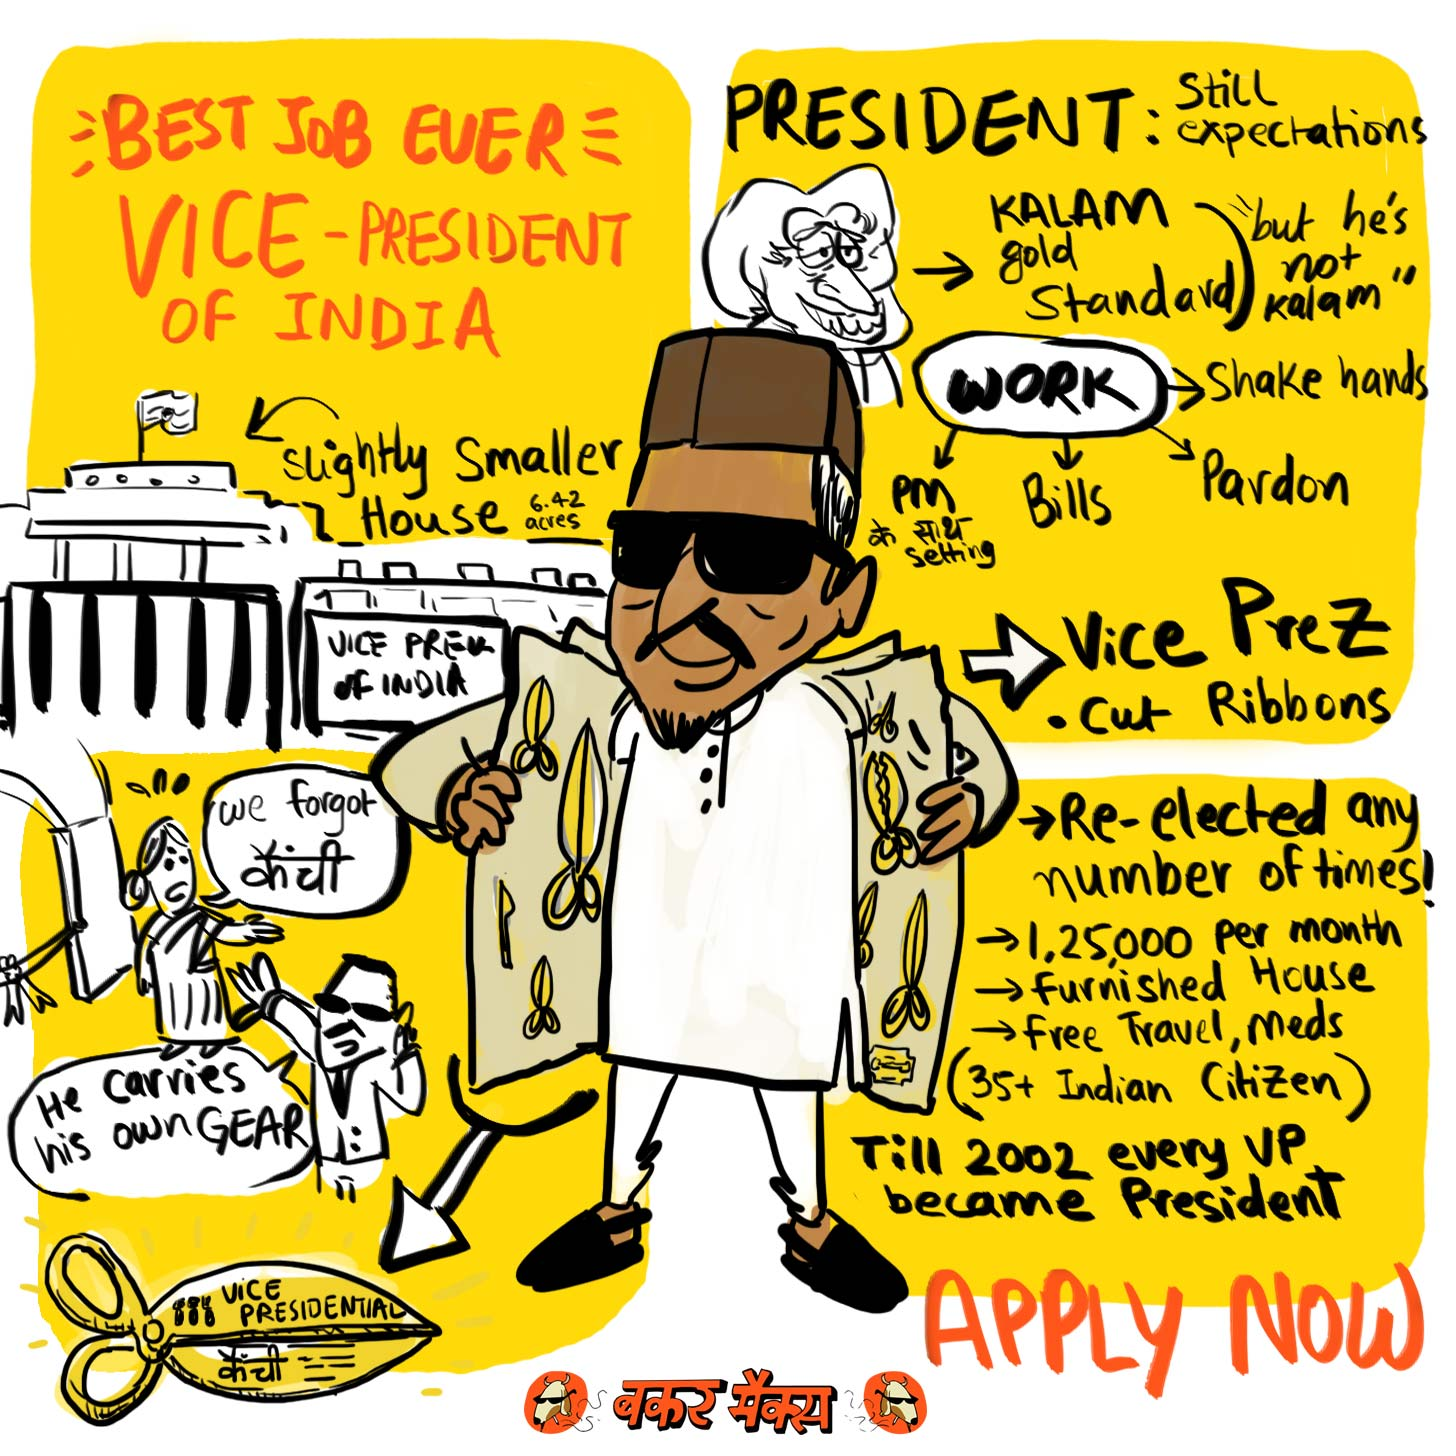 Best Job Ever – Vice President of India